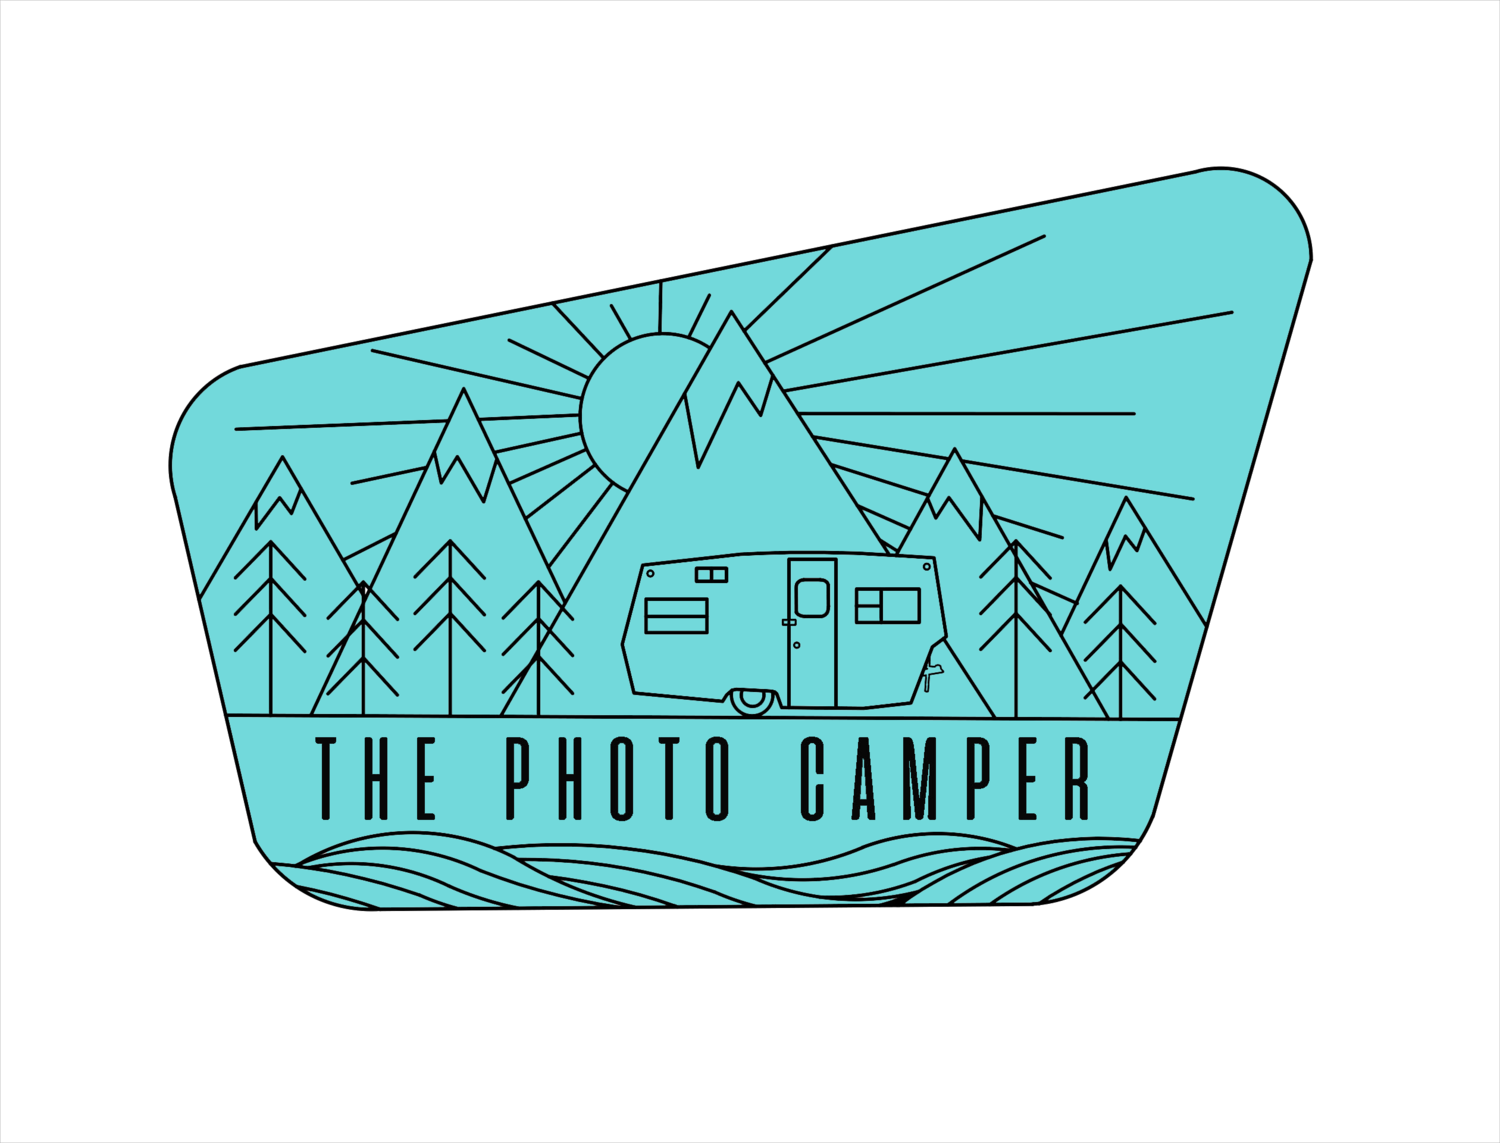 The Photo Camper Photo Booth